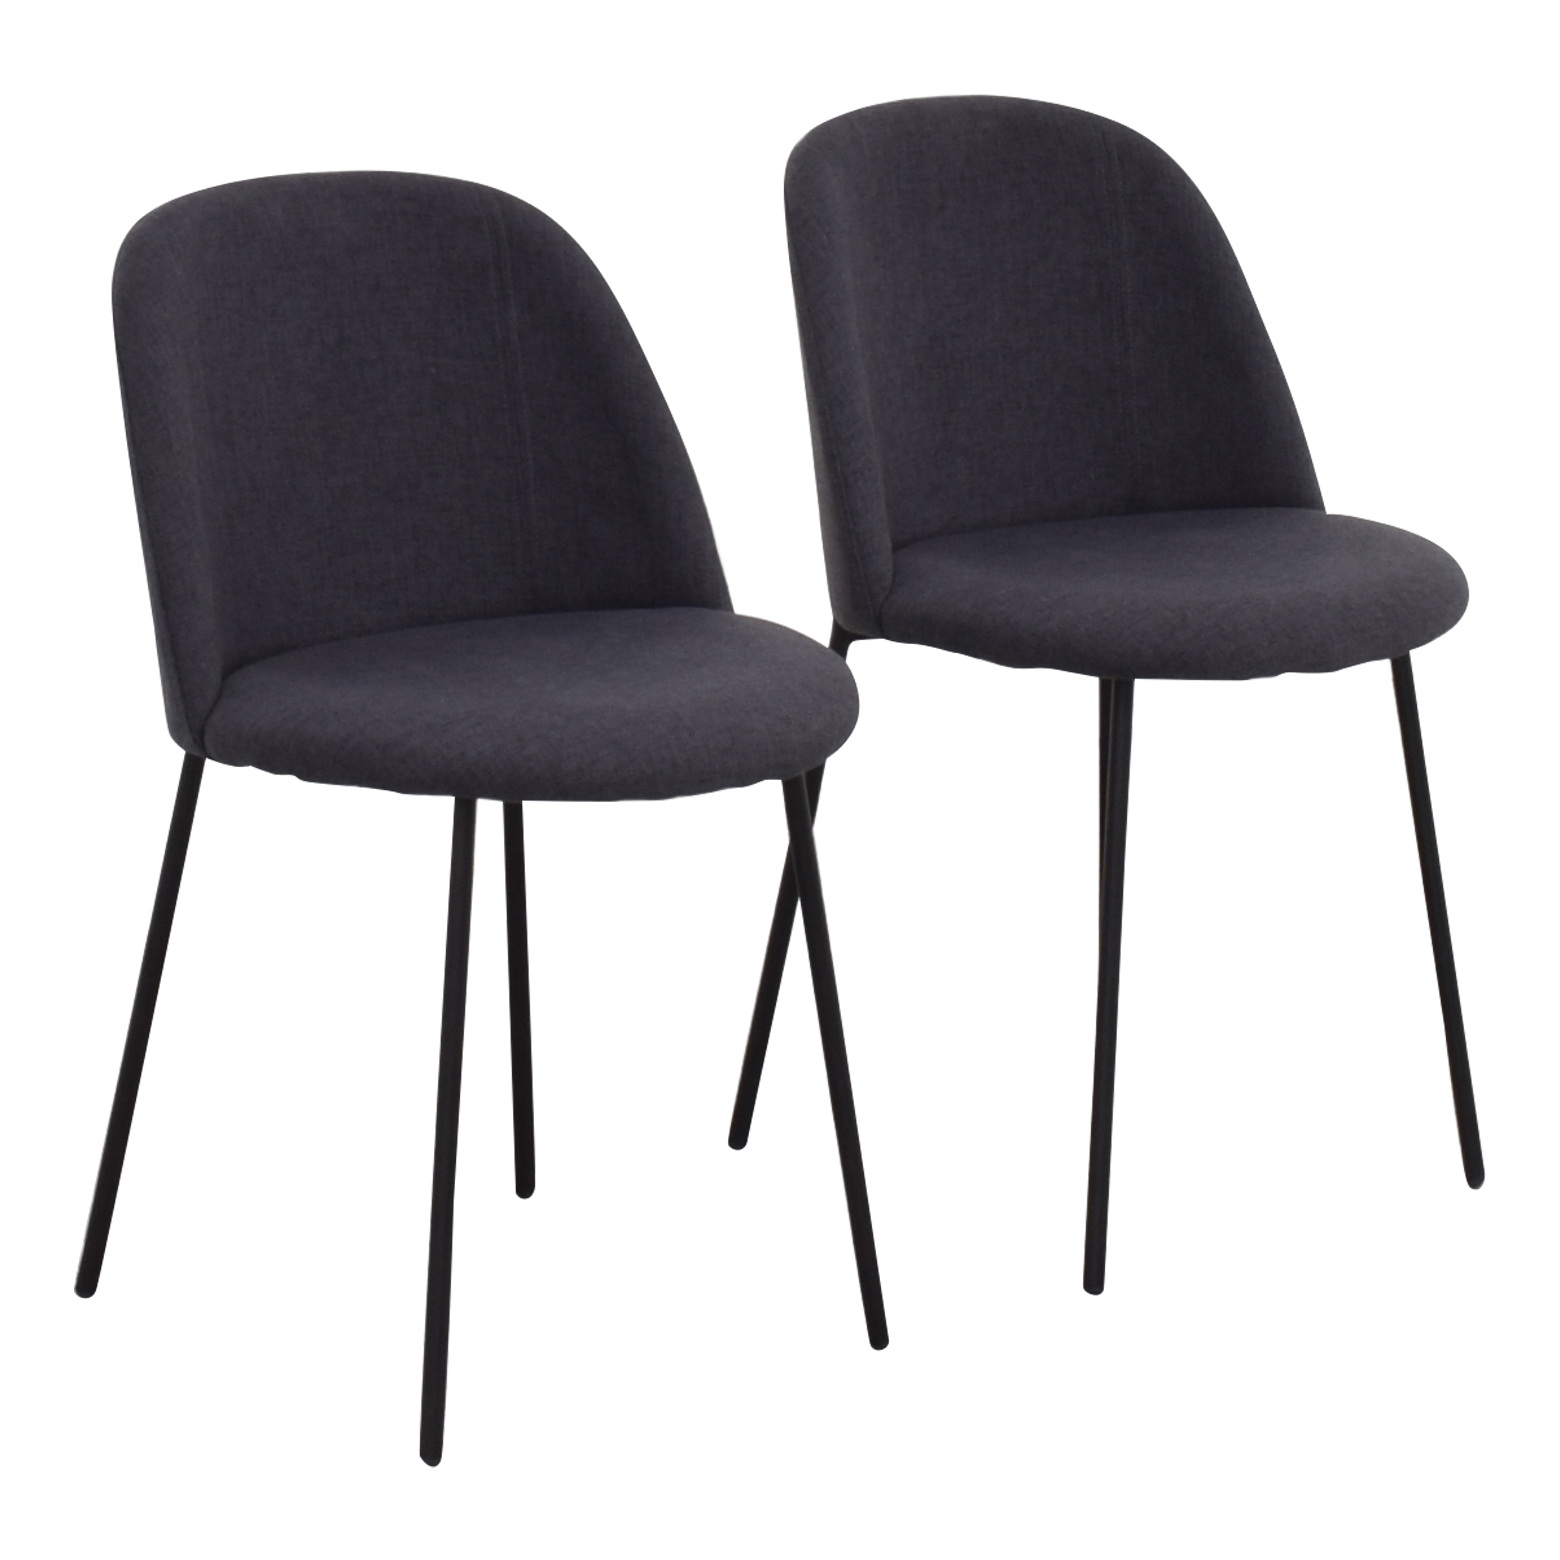 buy Article Article Ceres Dining Chairs online